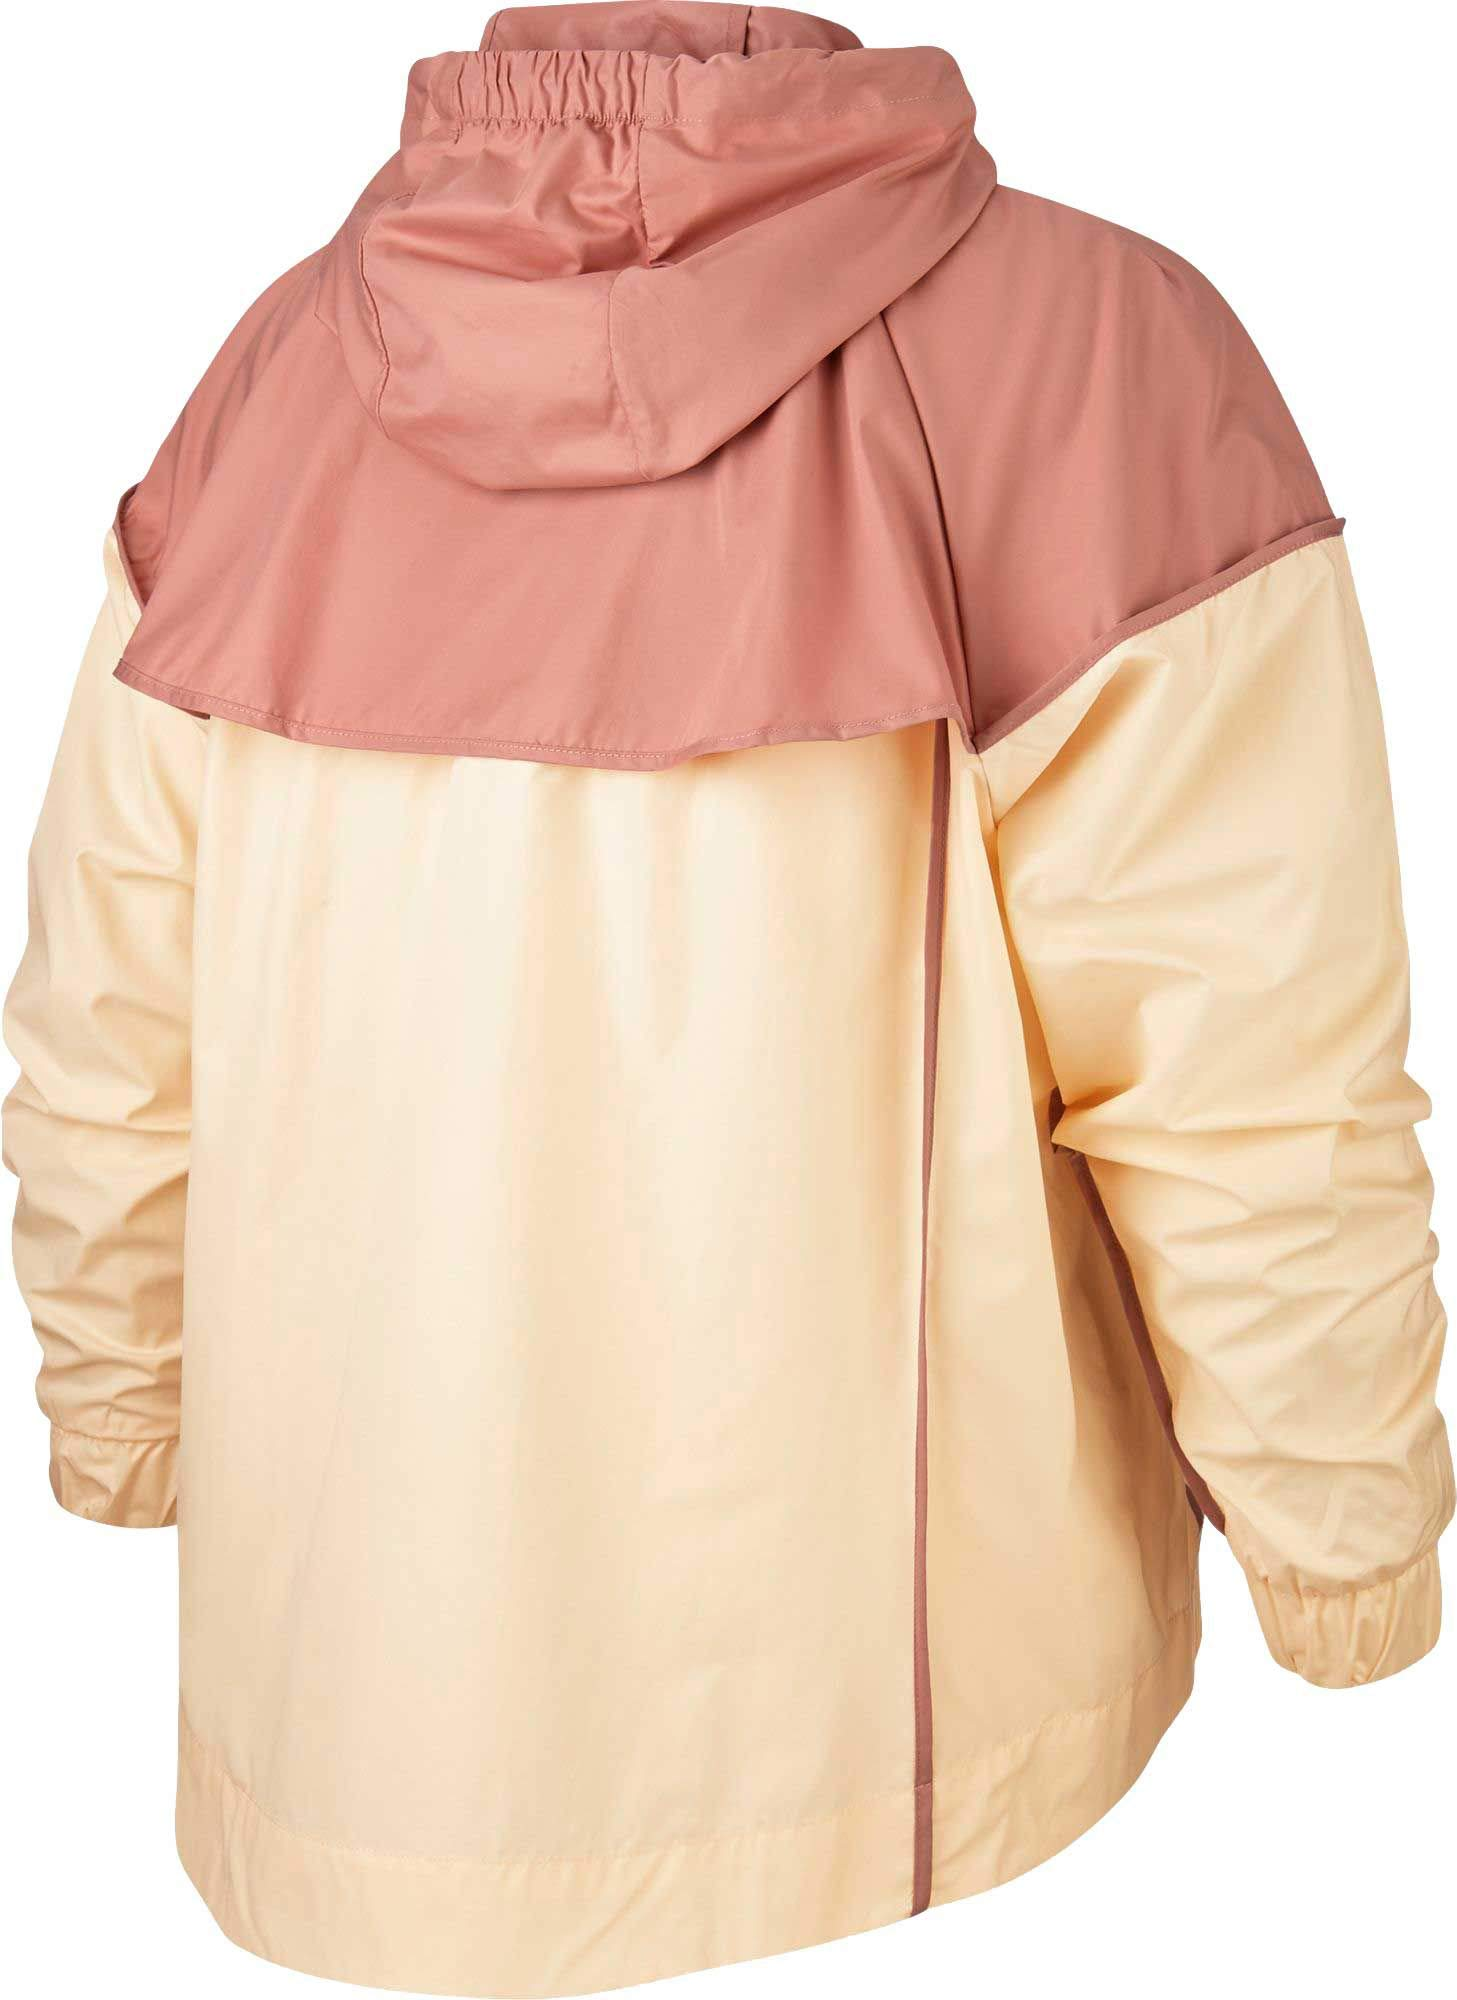 Nike Women's Plus Size Sportswear Windrunner Jacket (Guava Ice/Rust Pink, 2X) by Nike (Image #2)